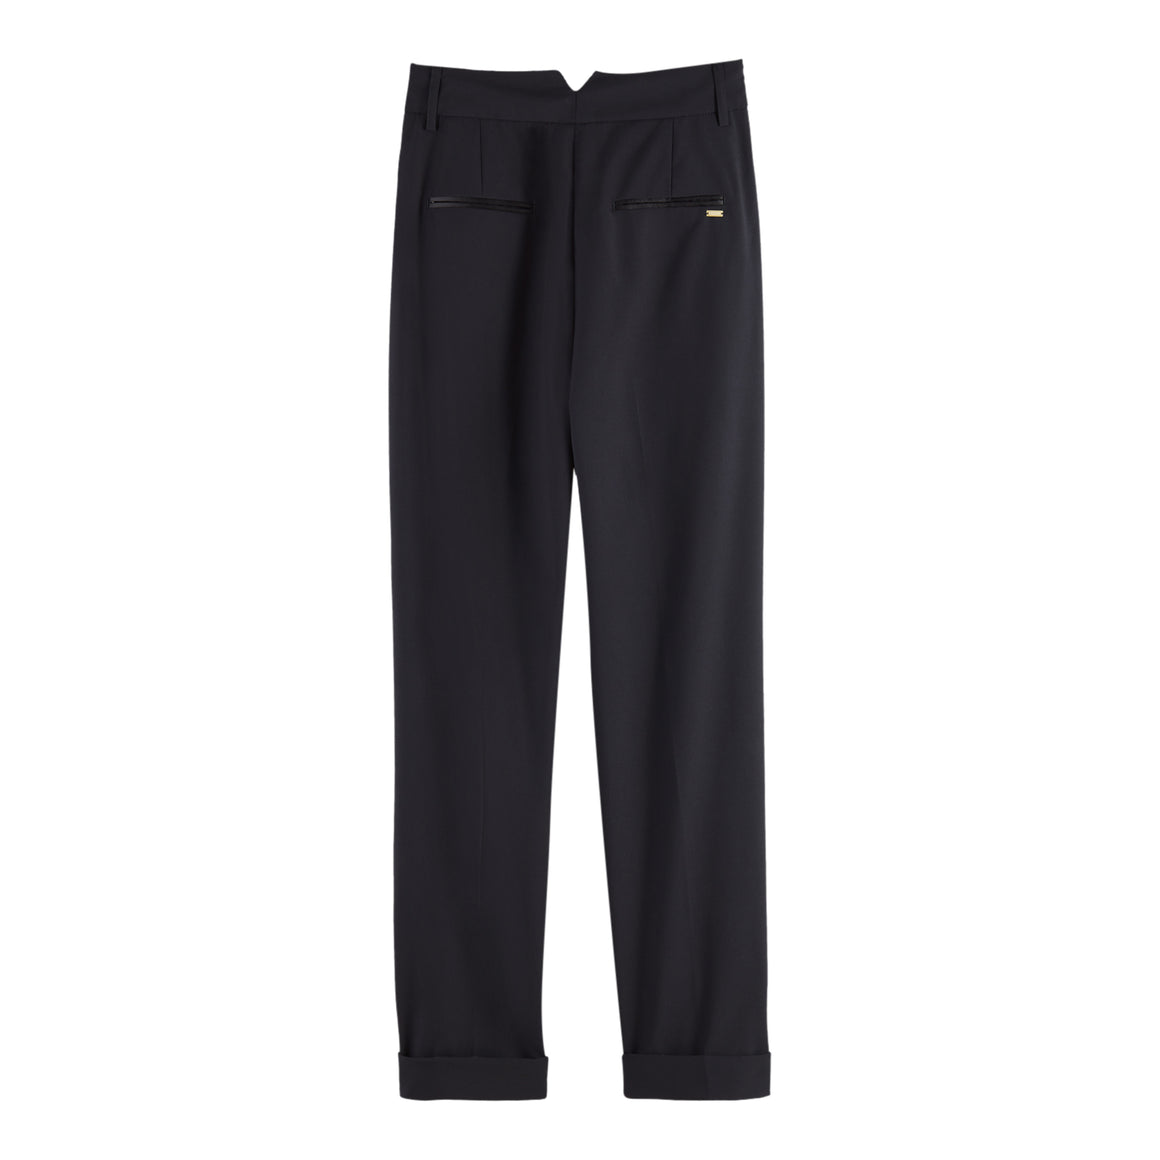 Tailored High Waist Pants for Women in Black